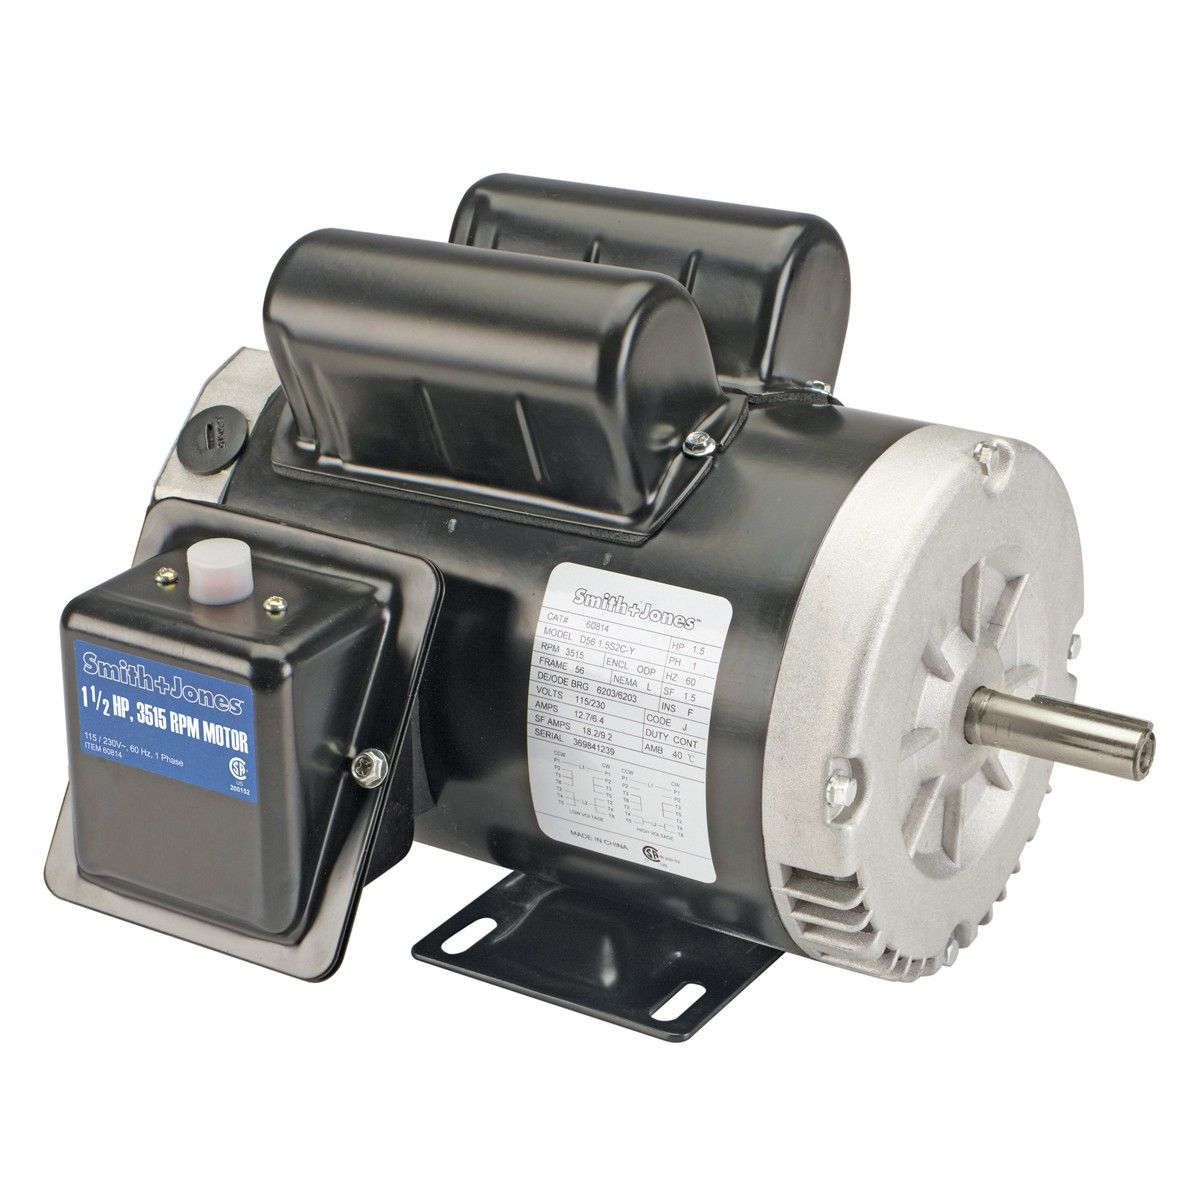 11/2 Horsepower Compressor Duty Motor (With images) Motor